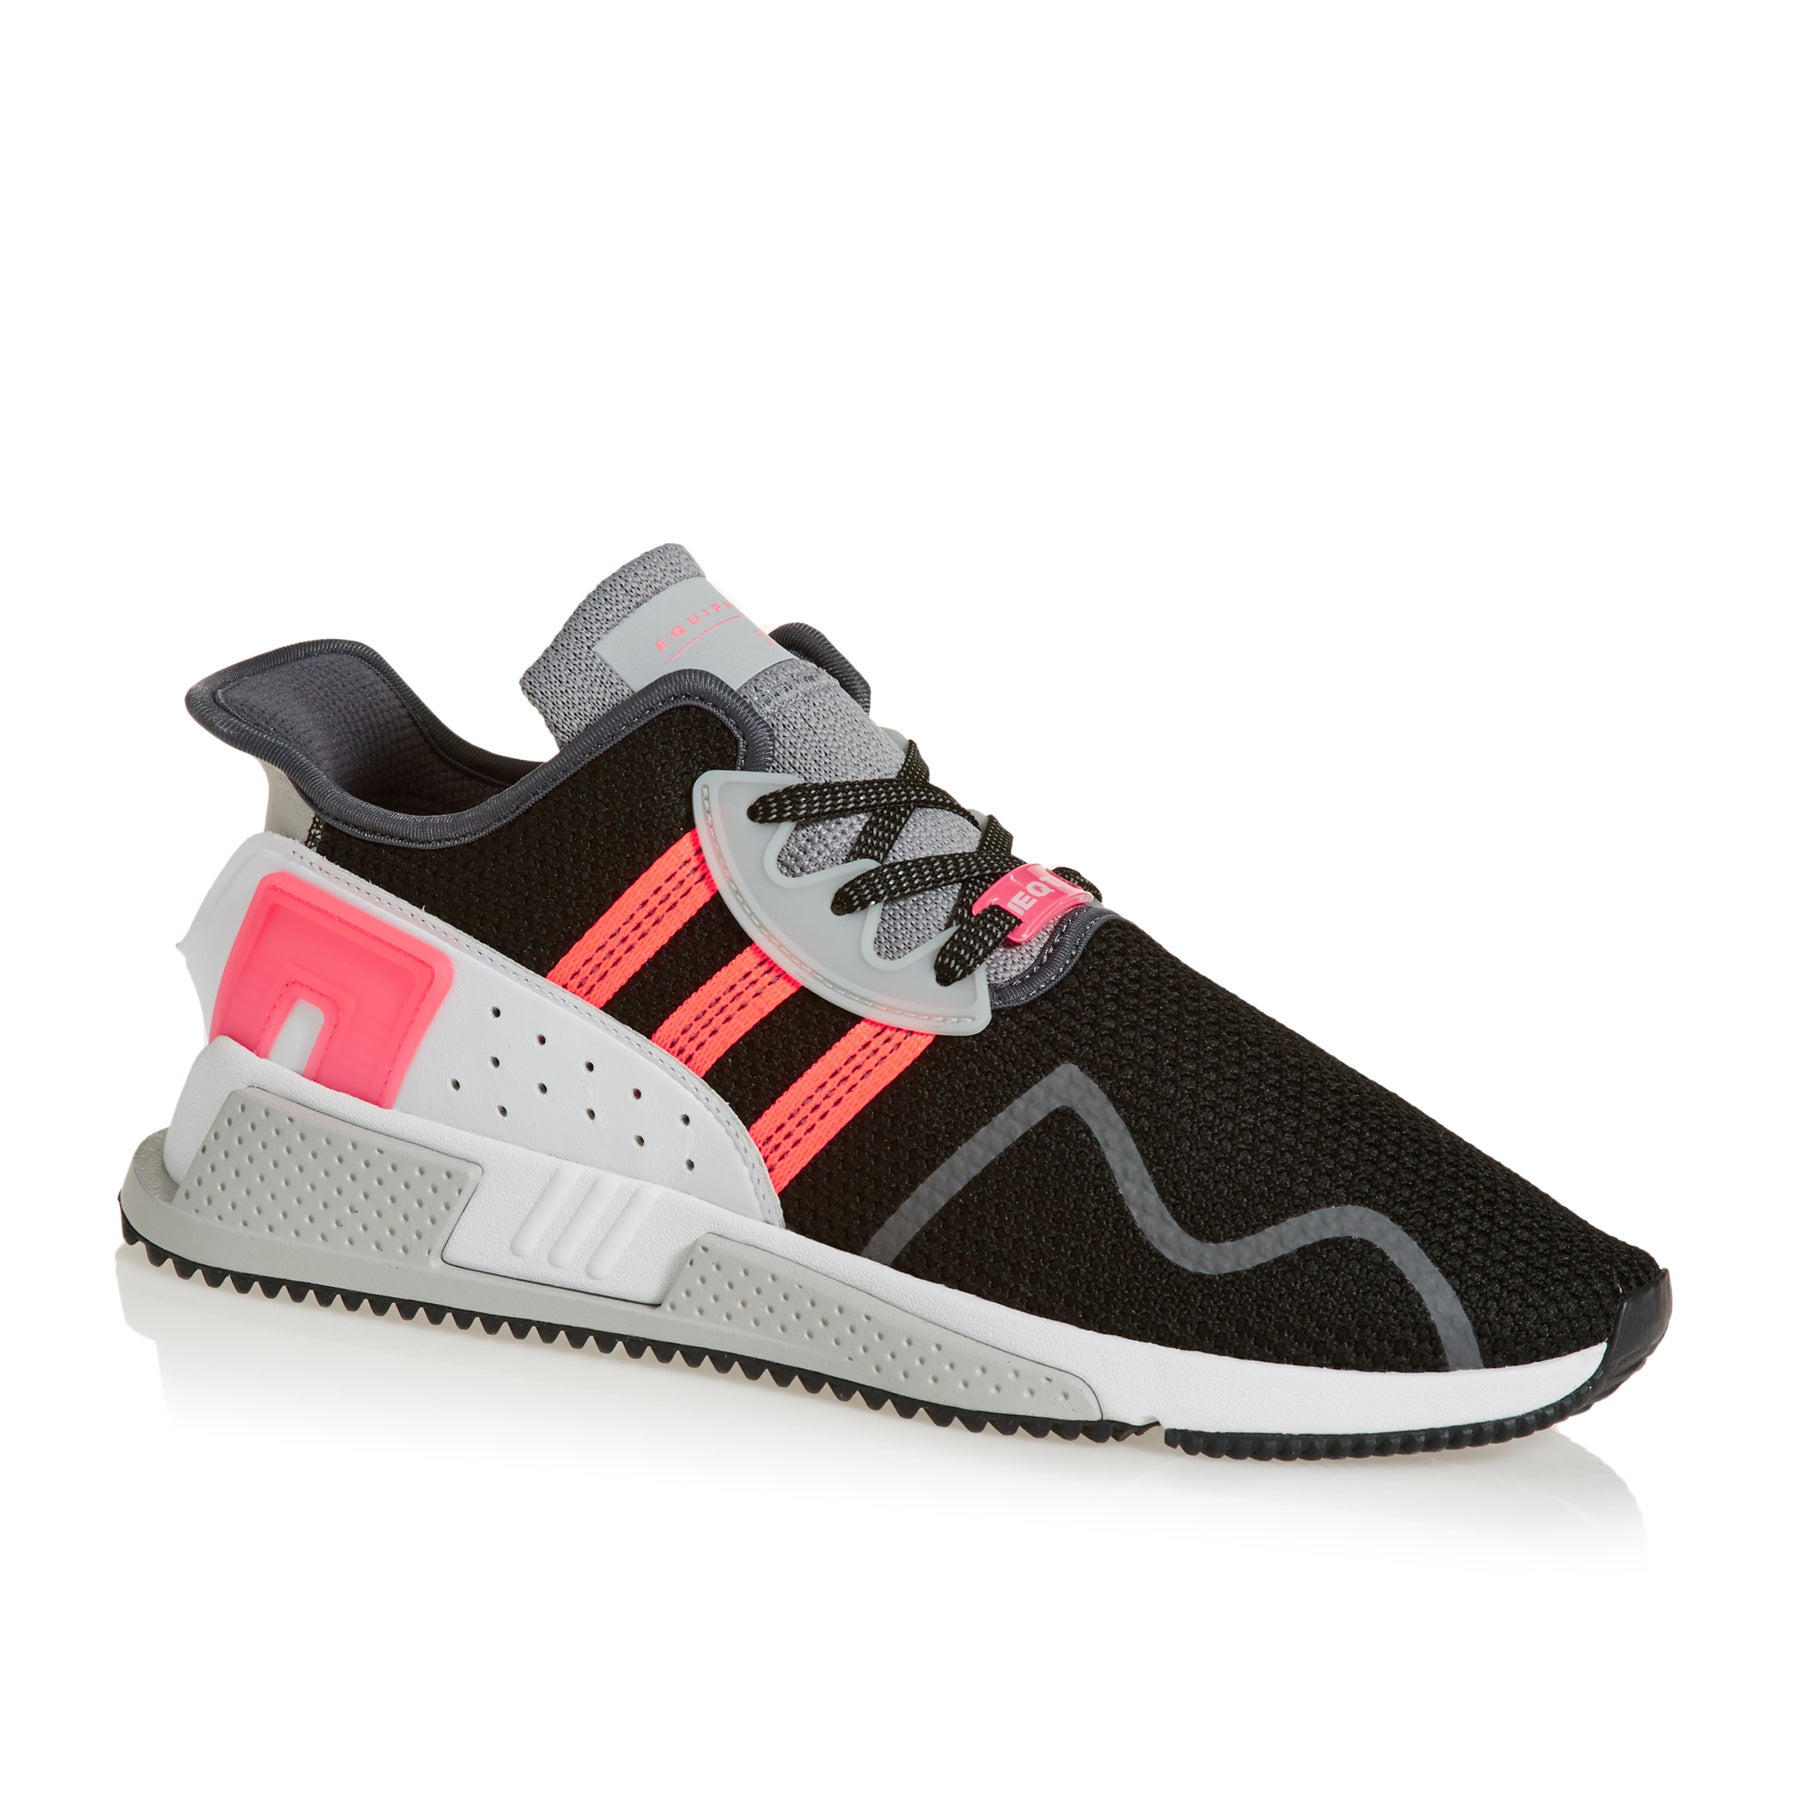 d14852468751 Adidas Originals EQT Cushion Adv Shoes - Free Delivery options on ...